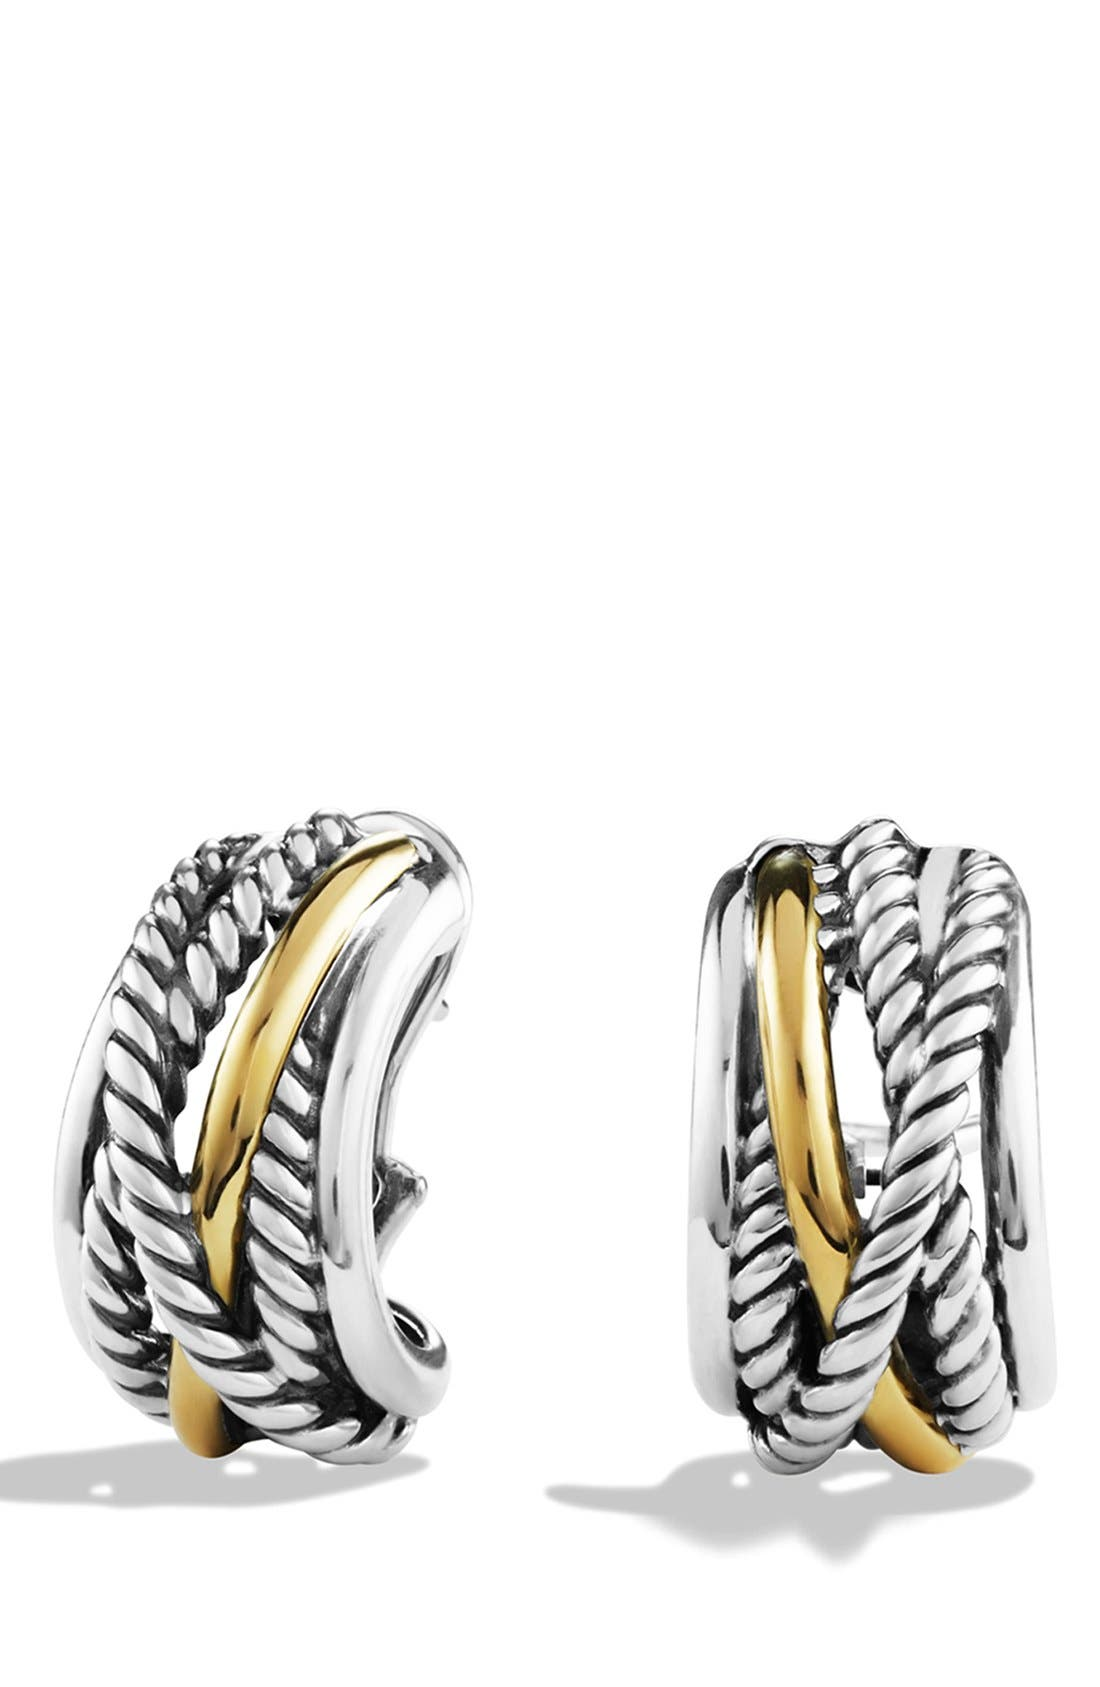 Main Image - David Yurman 'Crossover' Earrings with Gold